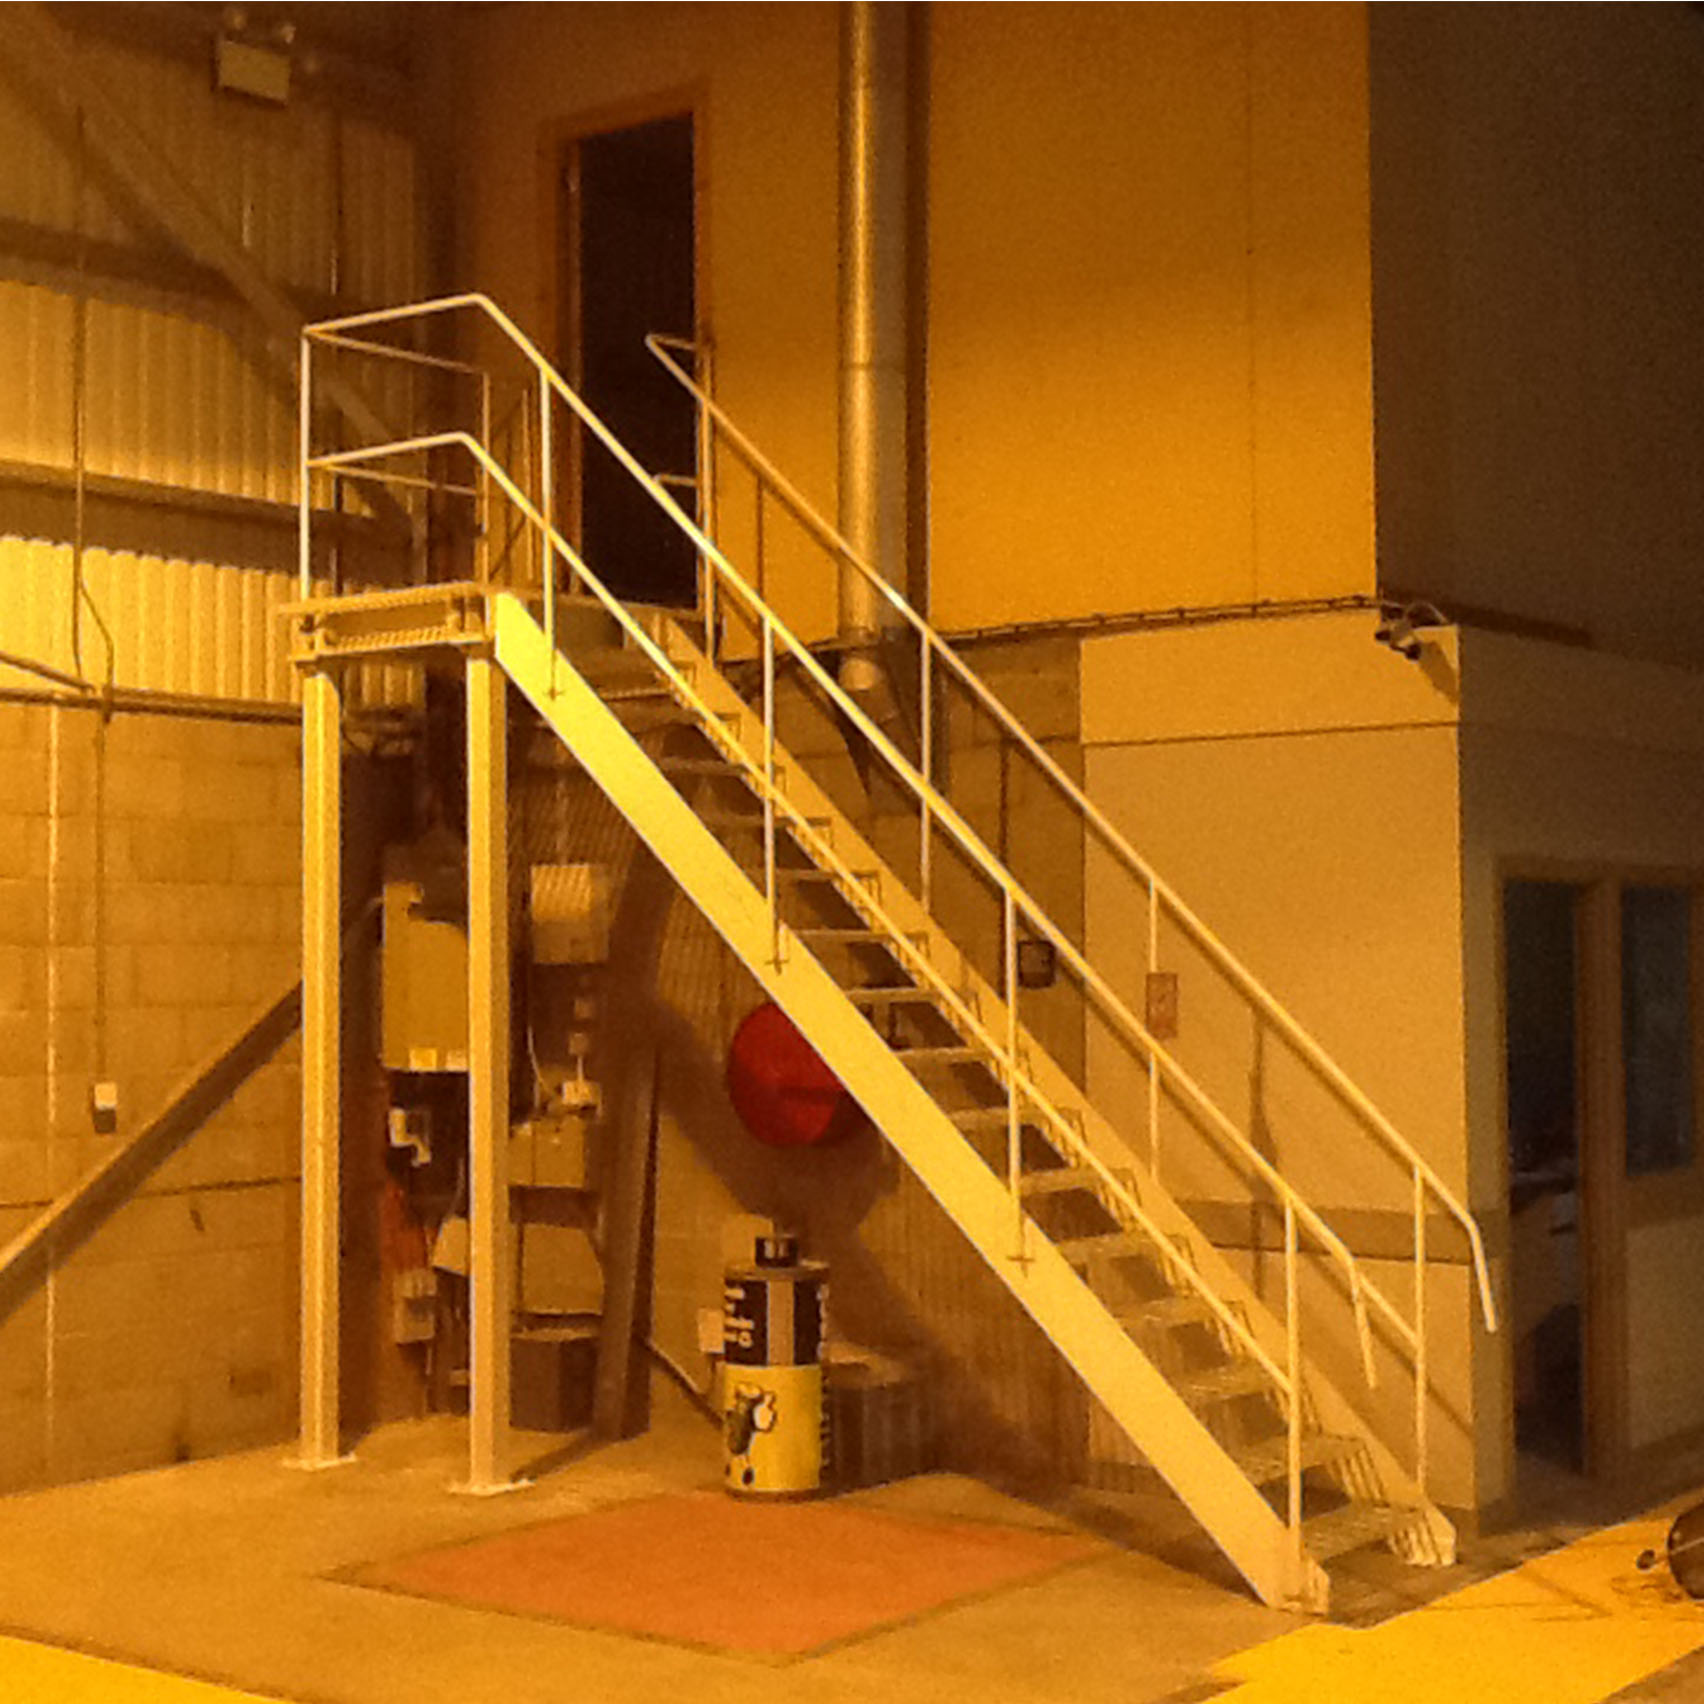 MSL Remove Old Staircase in Warehouse